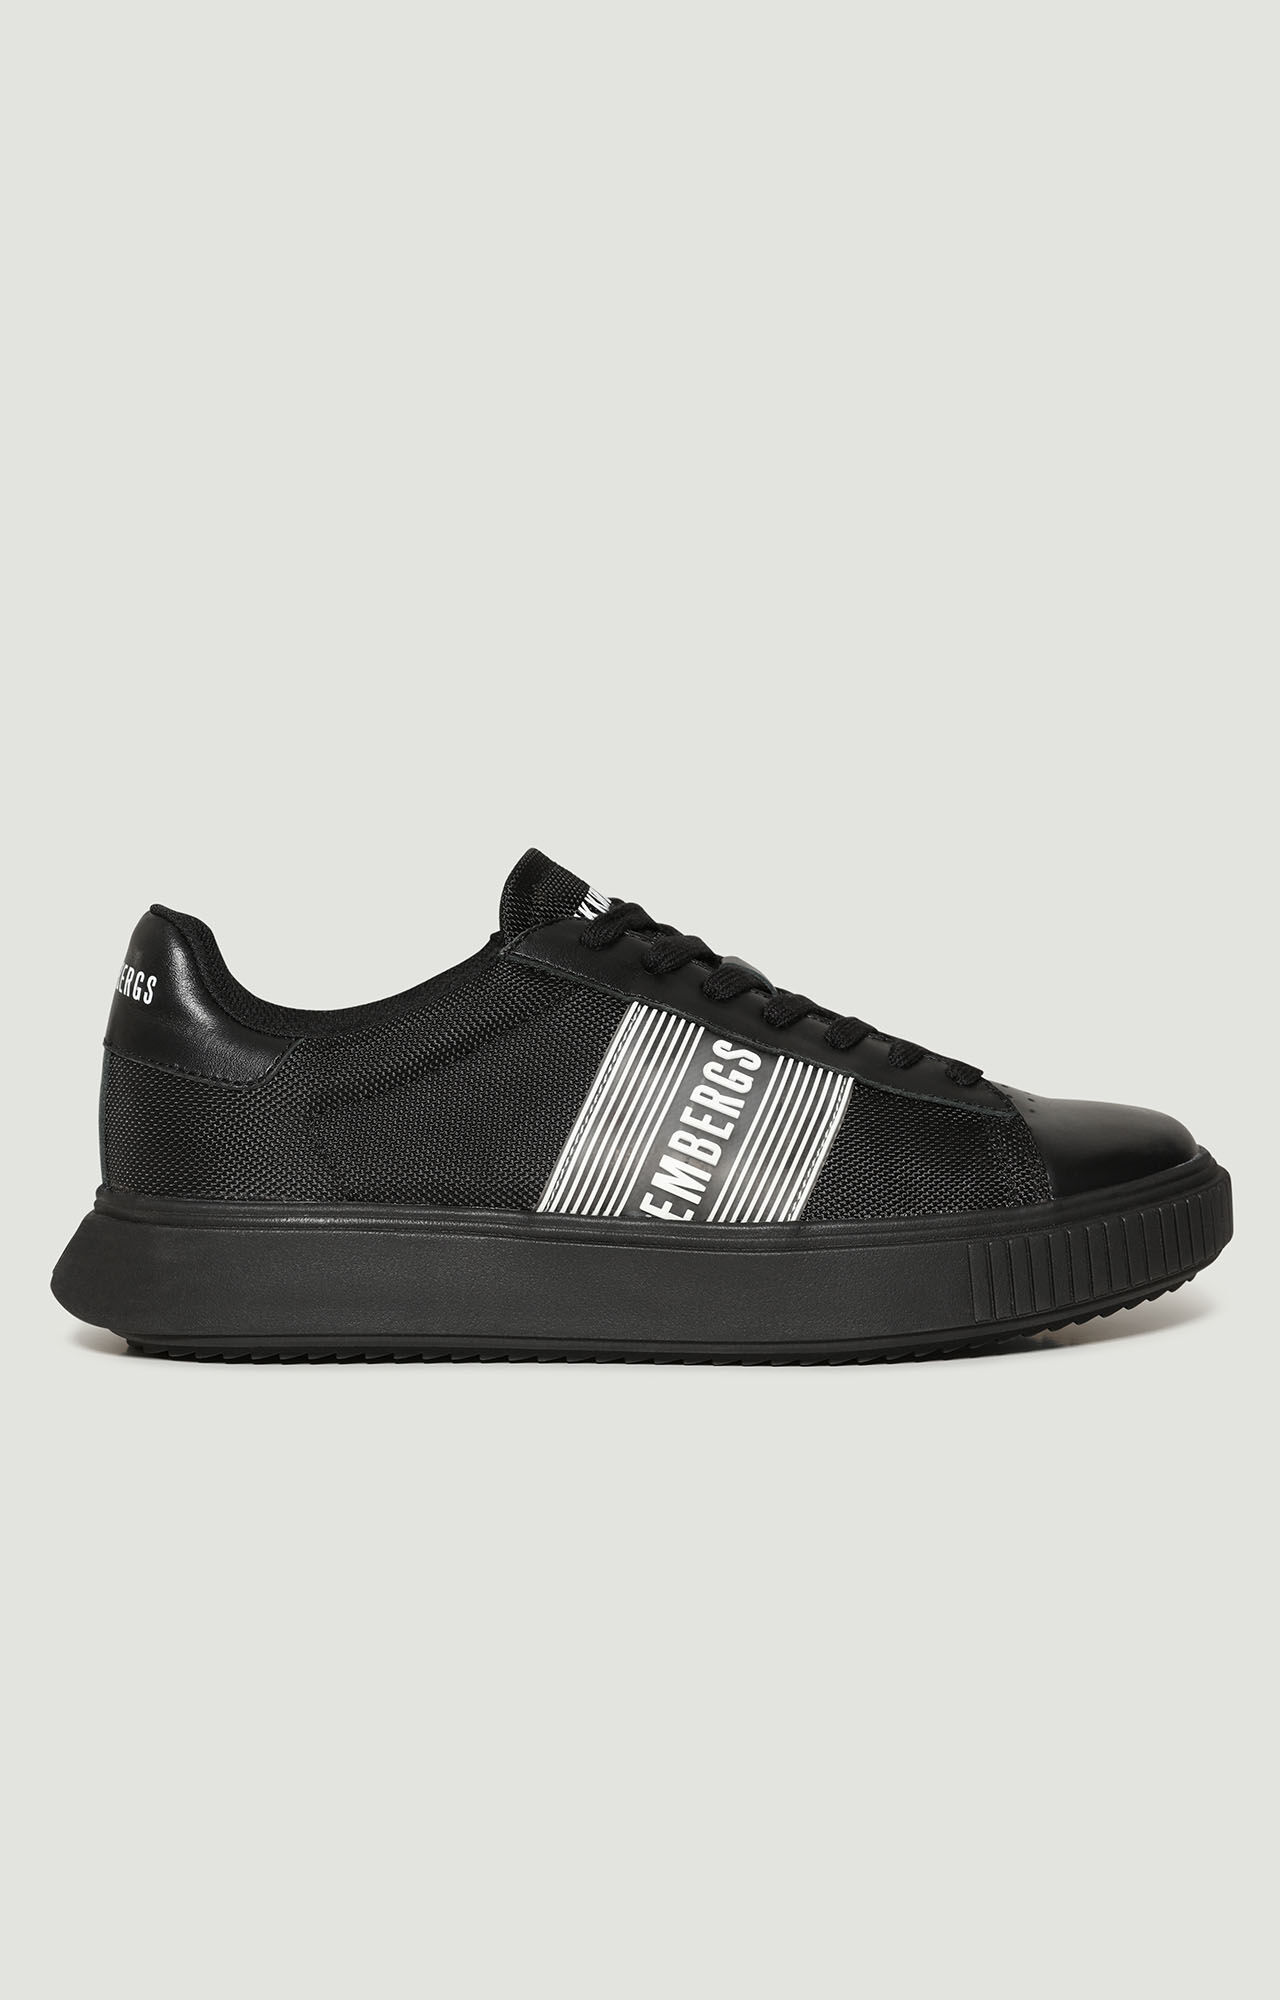 Deiven Men's Shoes (high top Trainers) In Black